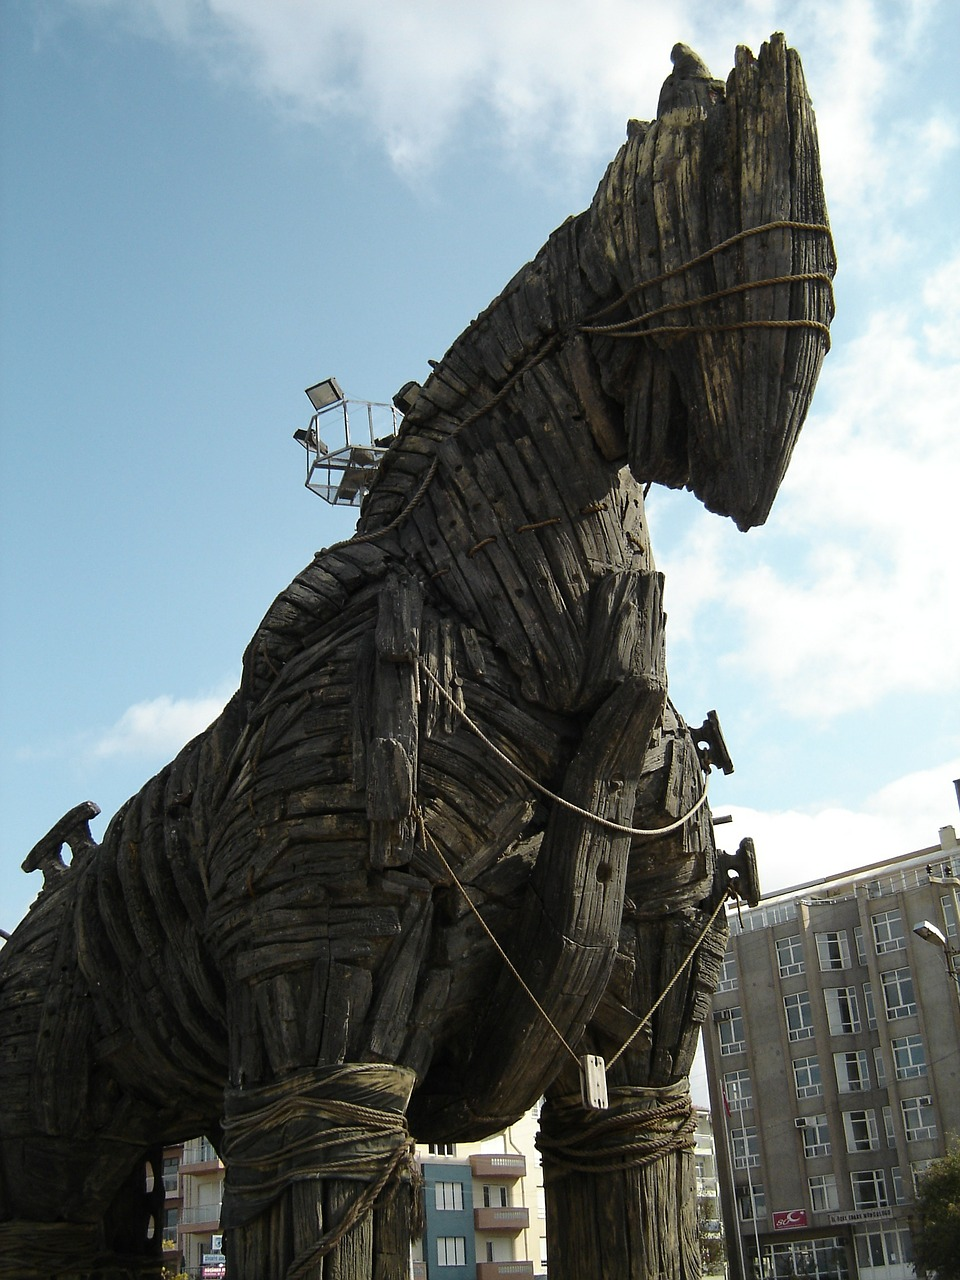 The ageless Trojan horse strikes at the code level, and requires deep inspection.